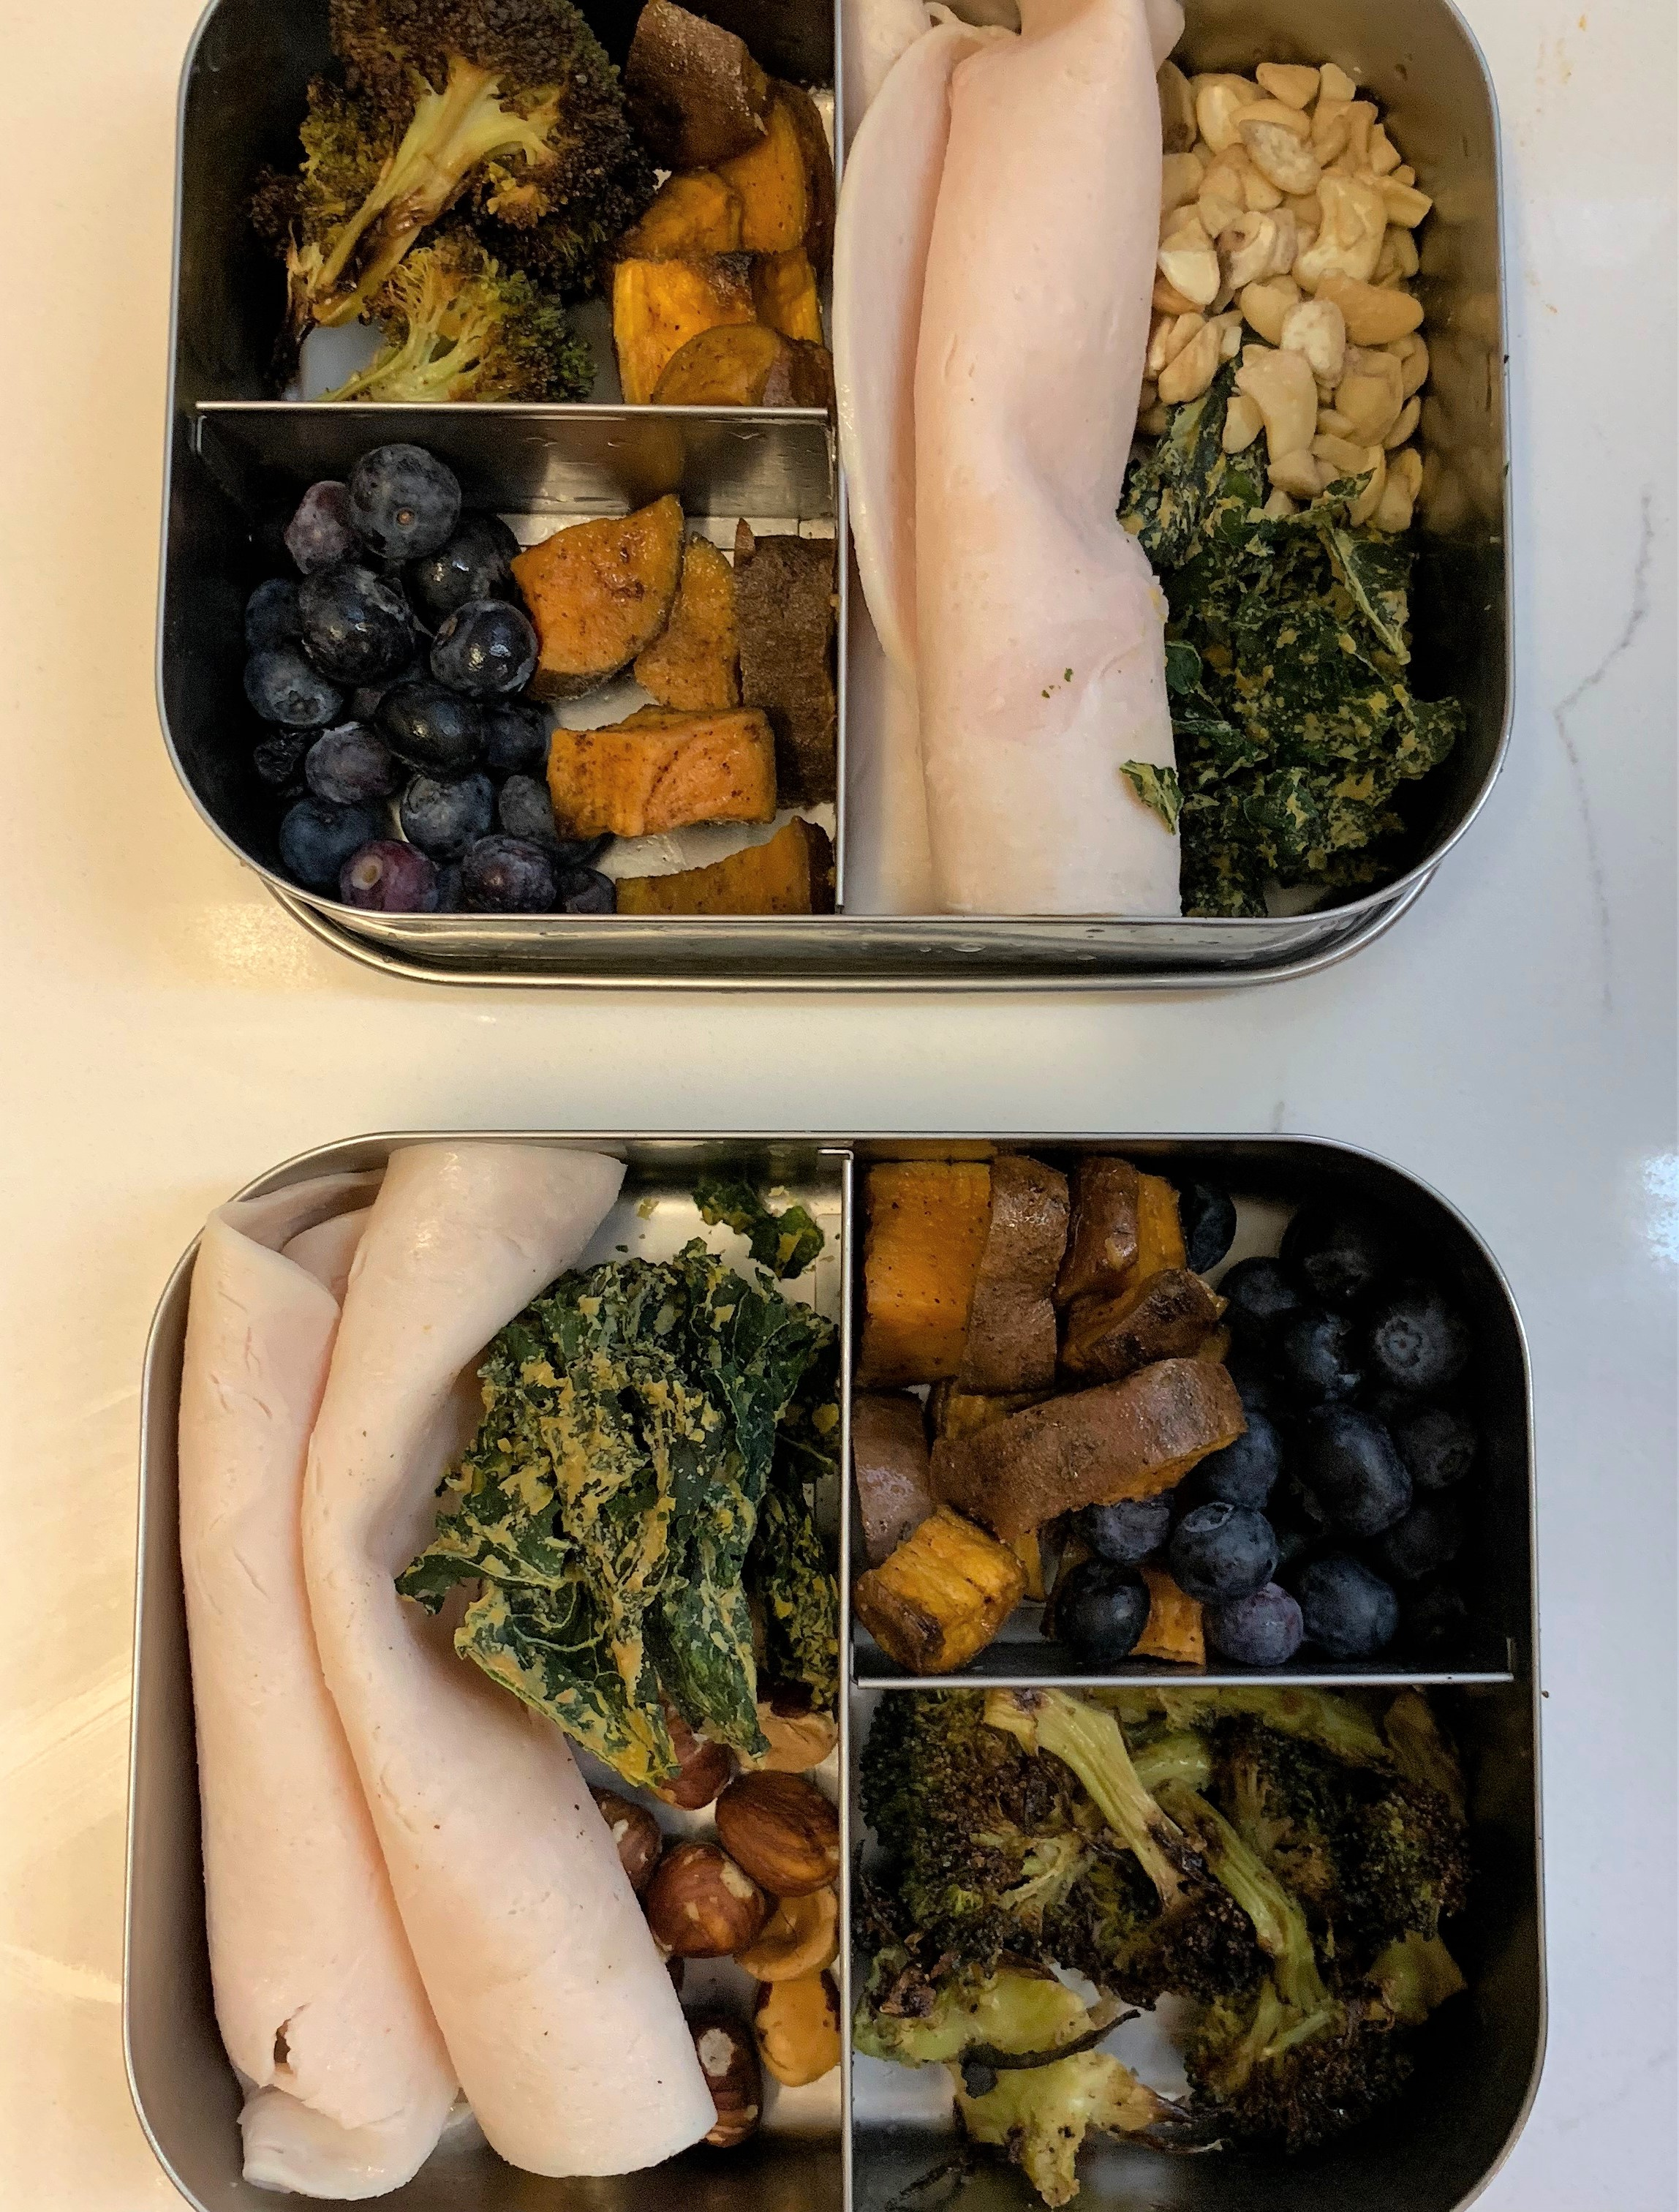 Main: Turkey, nuts (hazelnuts below, cashews above) and vegan kale chips from Trader Joe's  First small section: roasted broccoli  Second small section: Sweet potatoes and blueberries